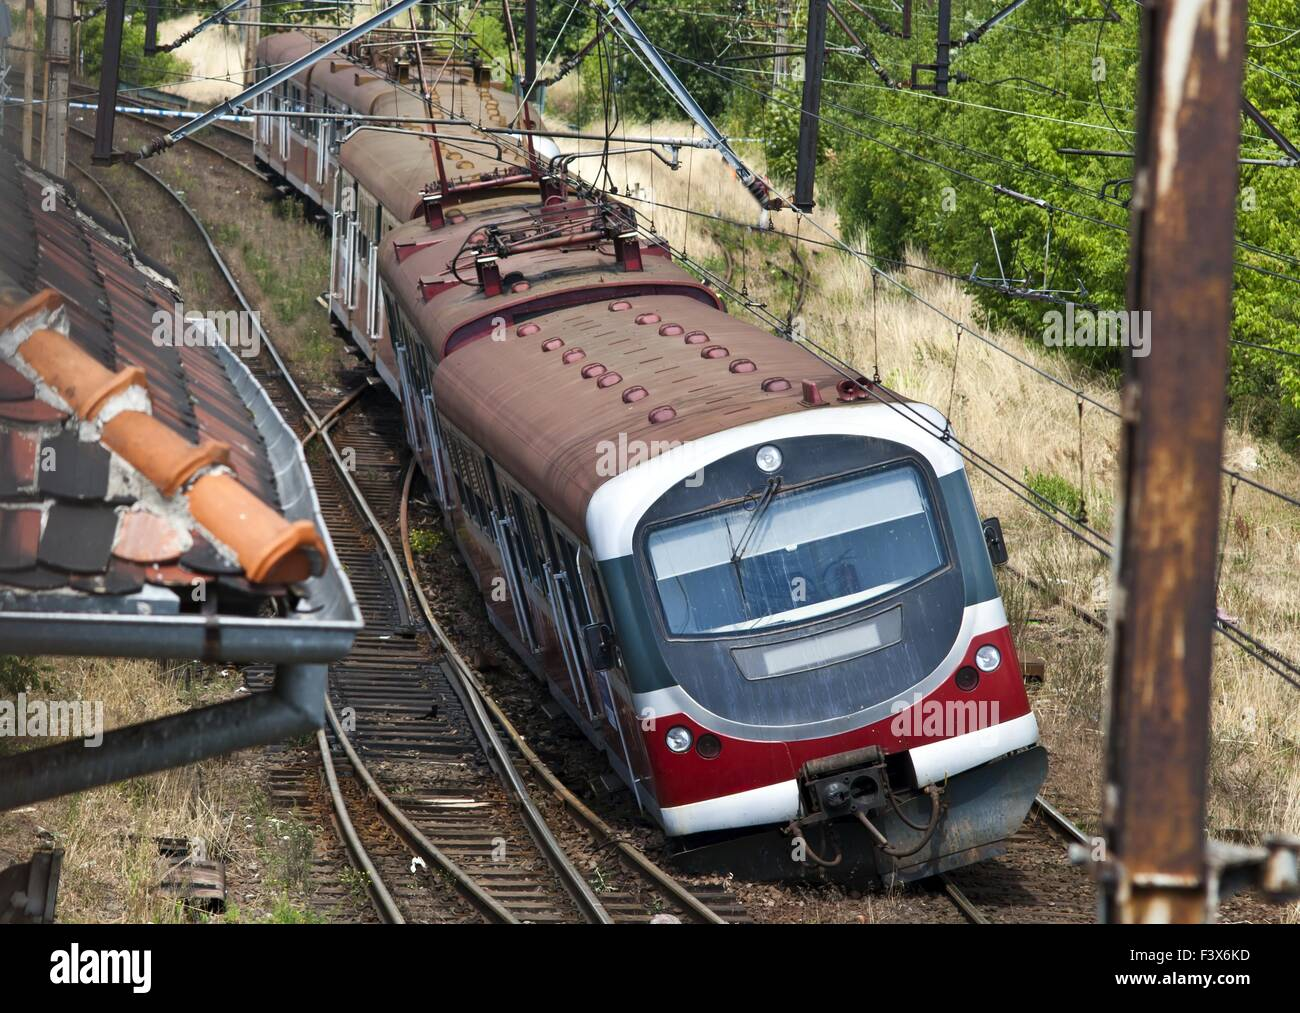 Derailed electric multiple unit (EMU) - Stock Image